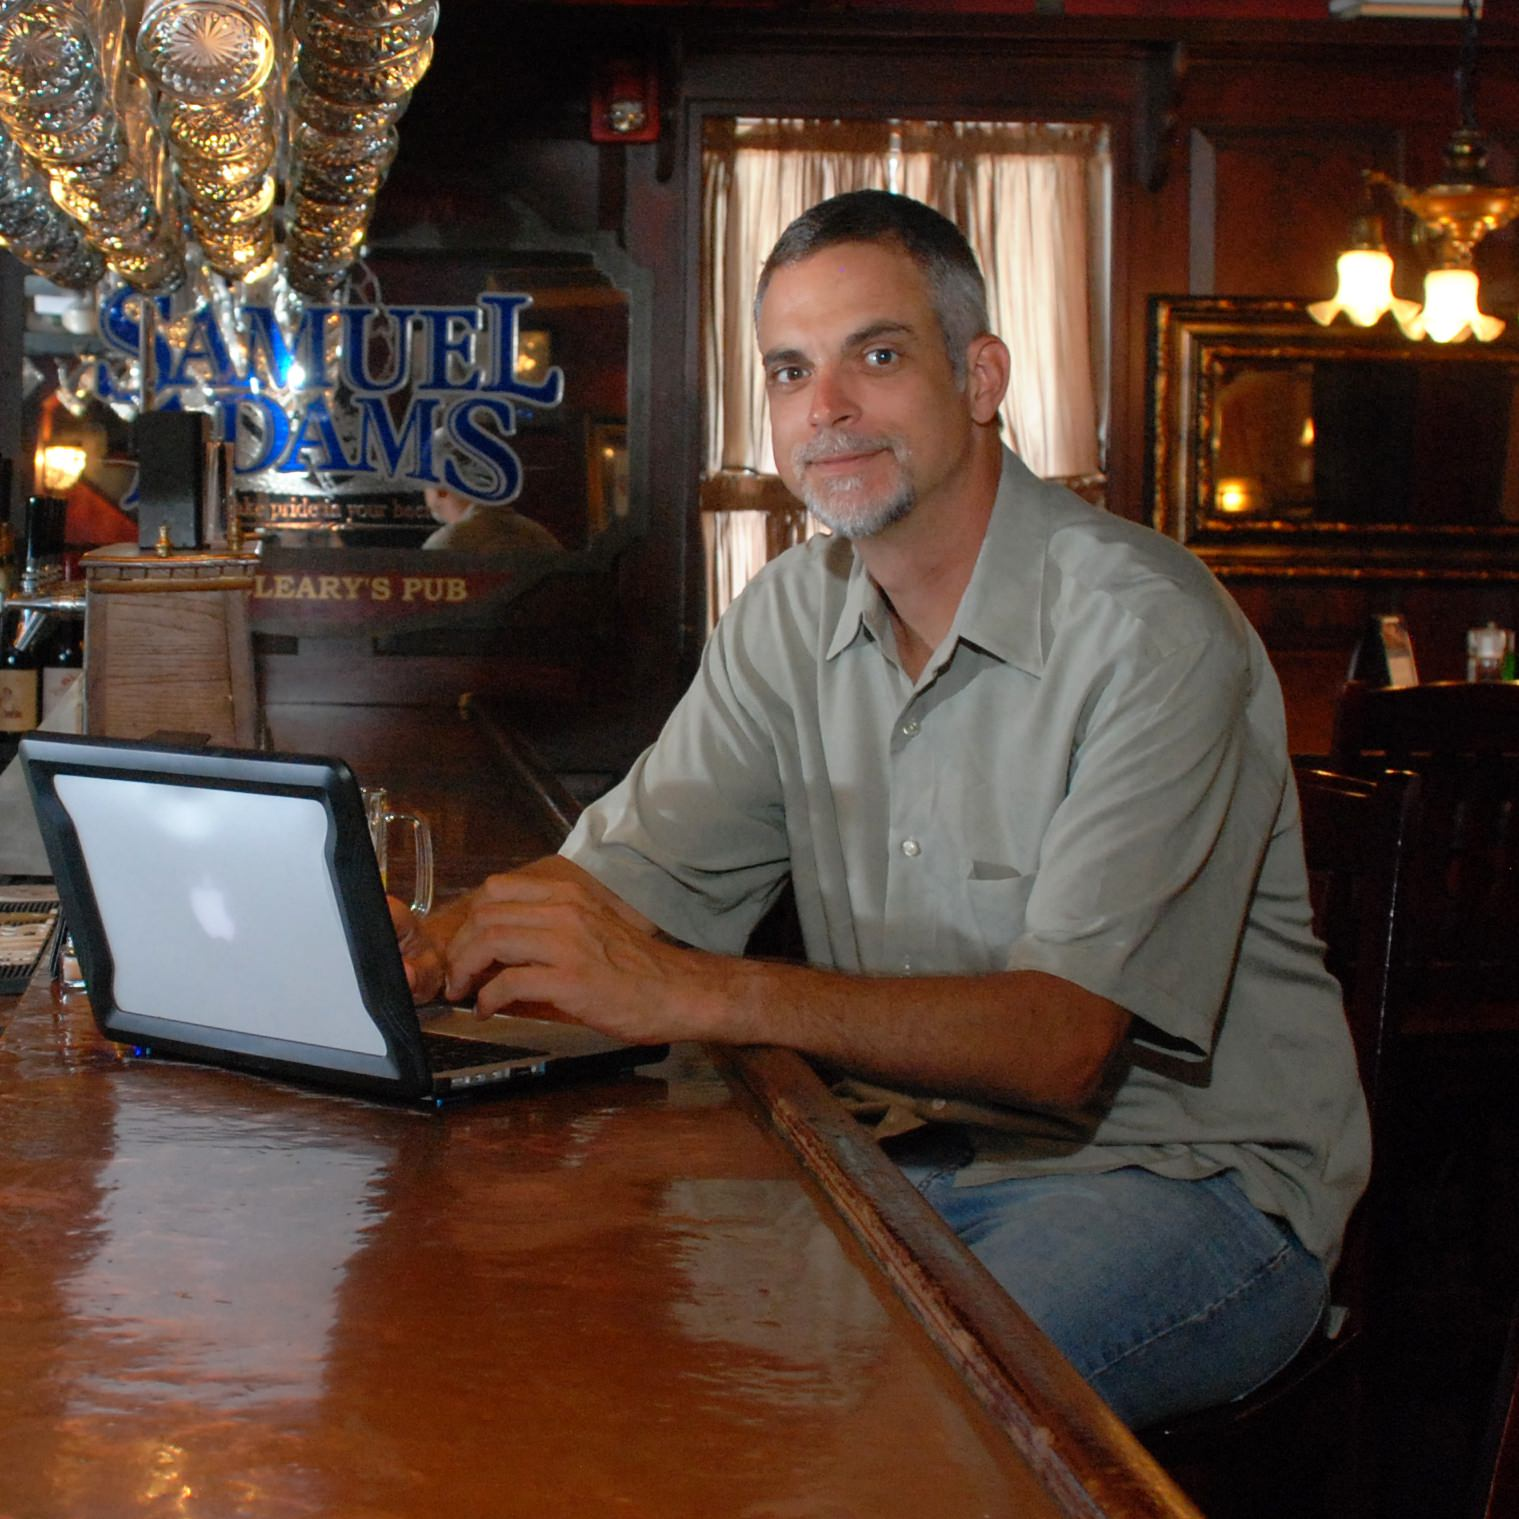 Image of Mark McGuire looking up from MacBook at the bar.